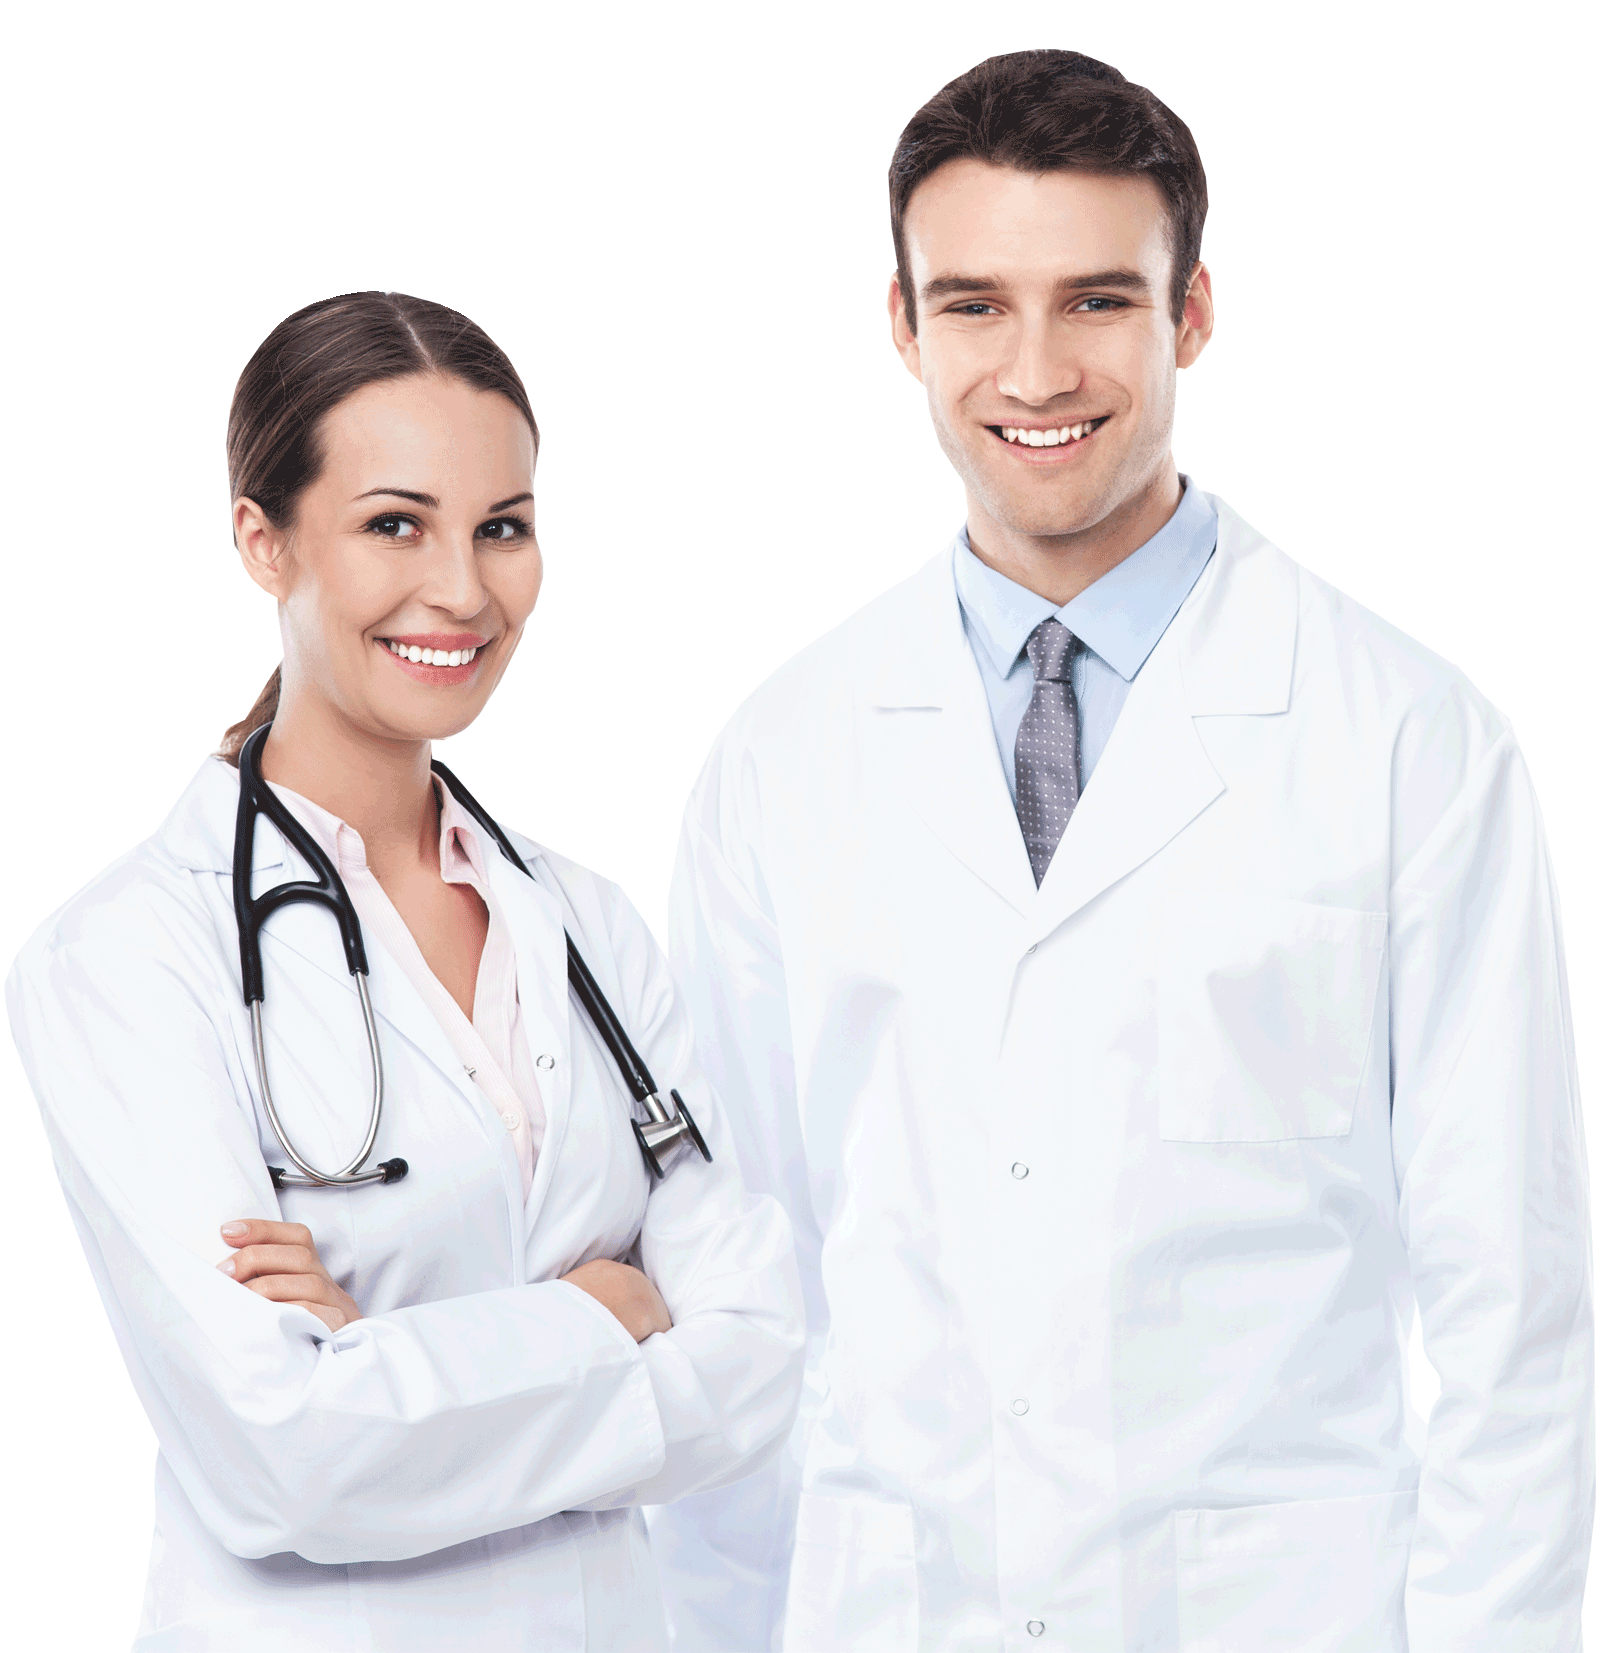 Doctors PNG Image